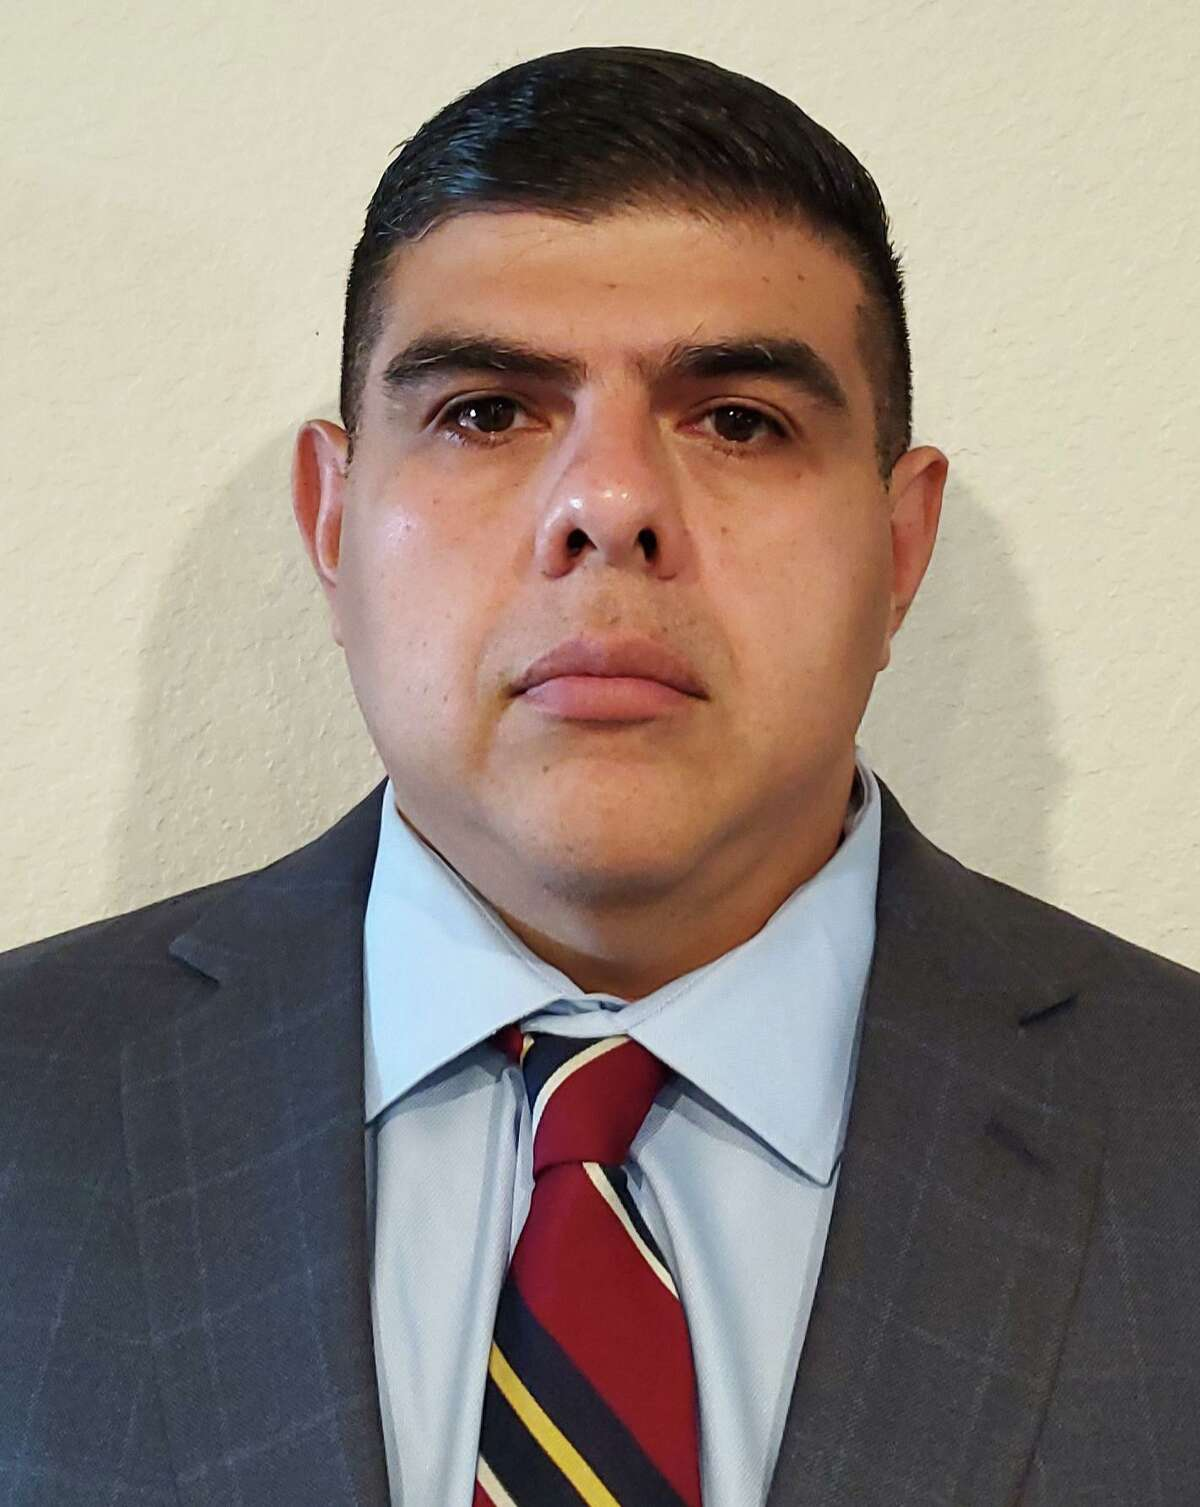 Raul Leonidas Nuques is one of seven candidates seeking three seats on the Southwest ISD board of trustees in the May 1 election.